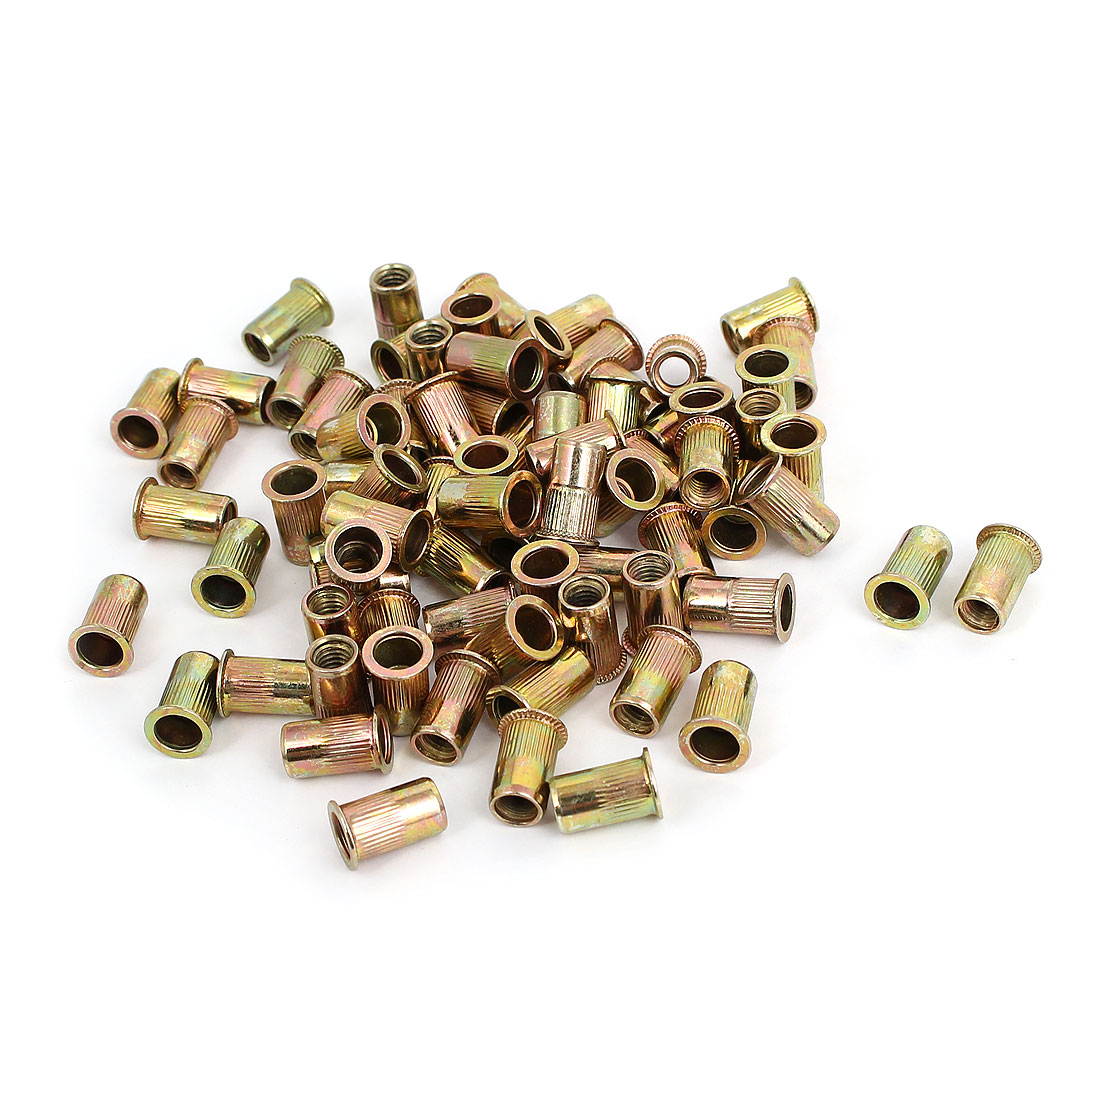 M5 Thread 12mm Long Rivet Nut Insert Nutsert 100pcs